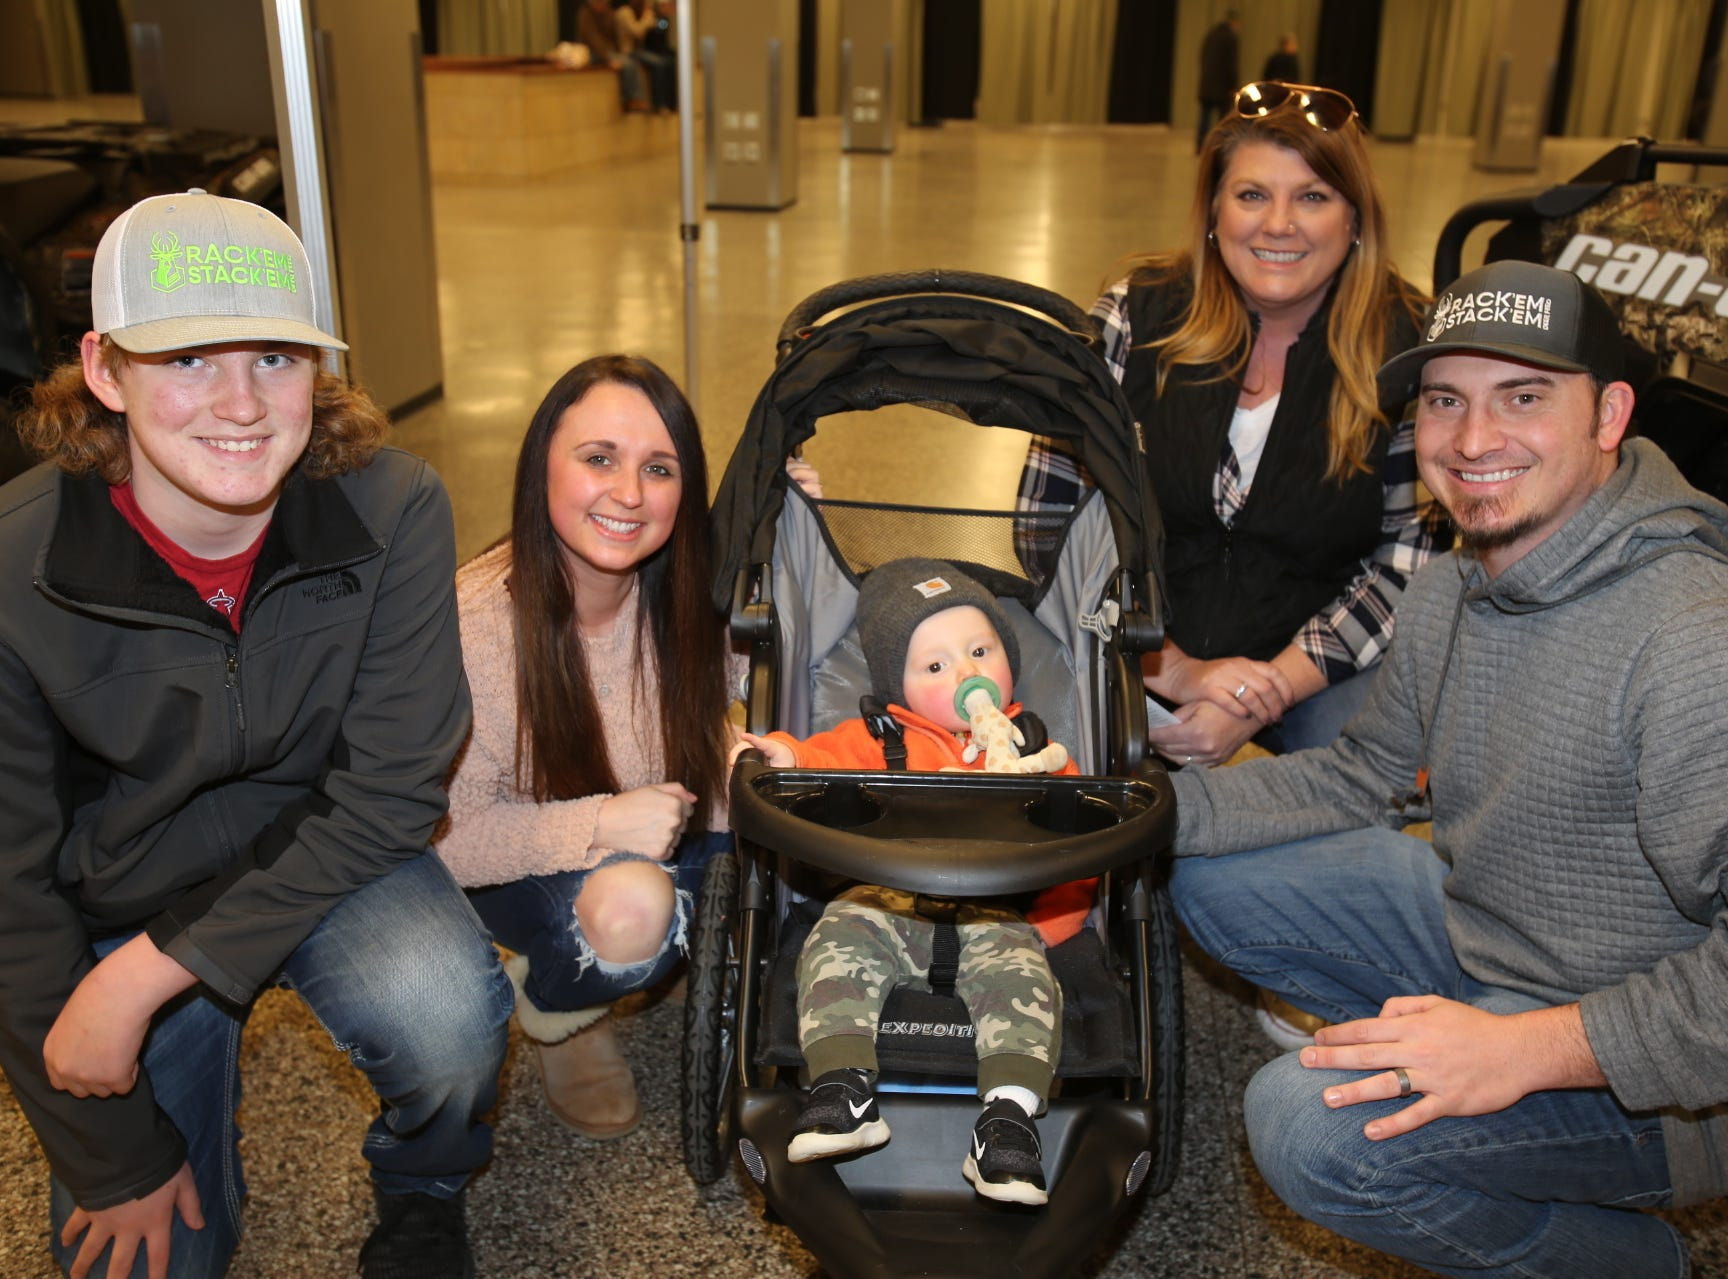 Jackson, Lacey, Laurie, Joey, and Hudson Lobland